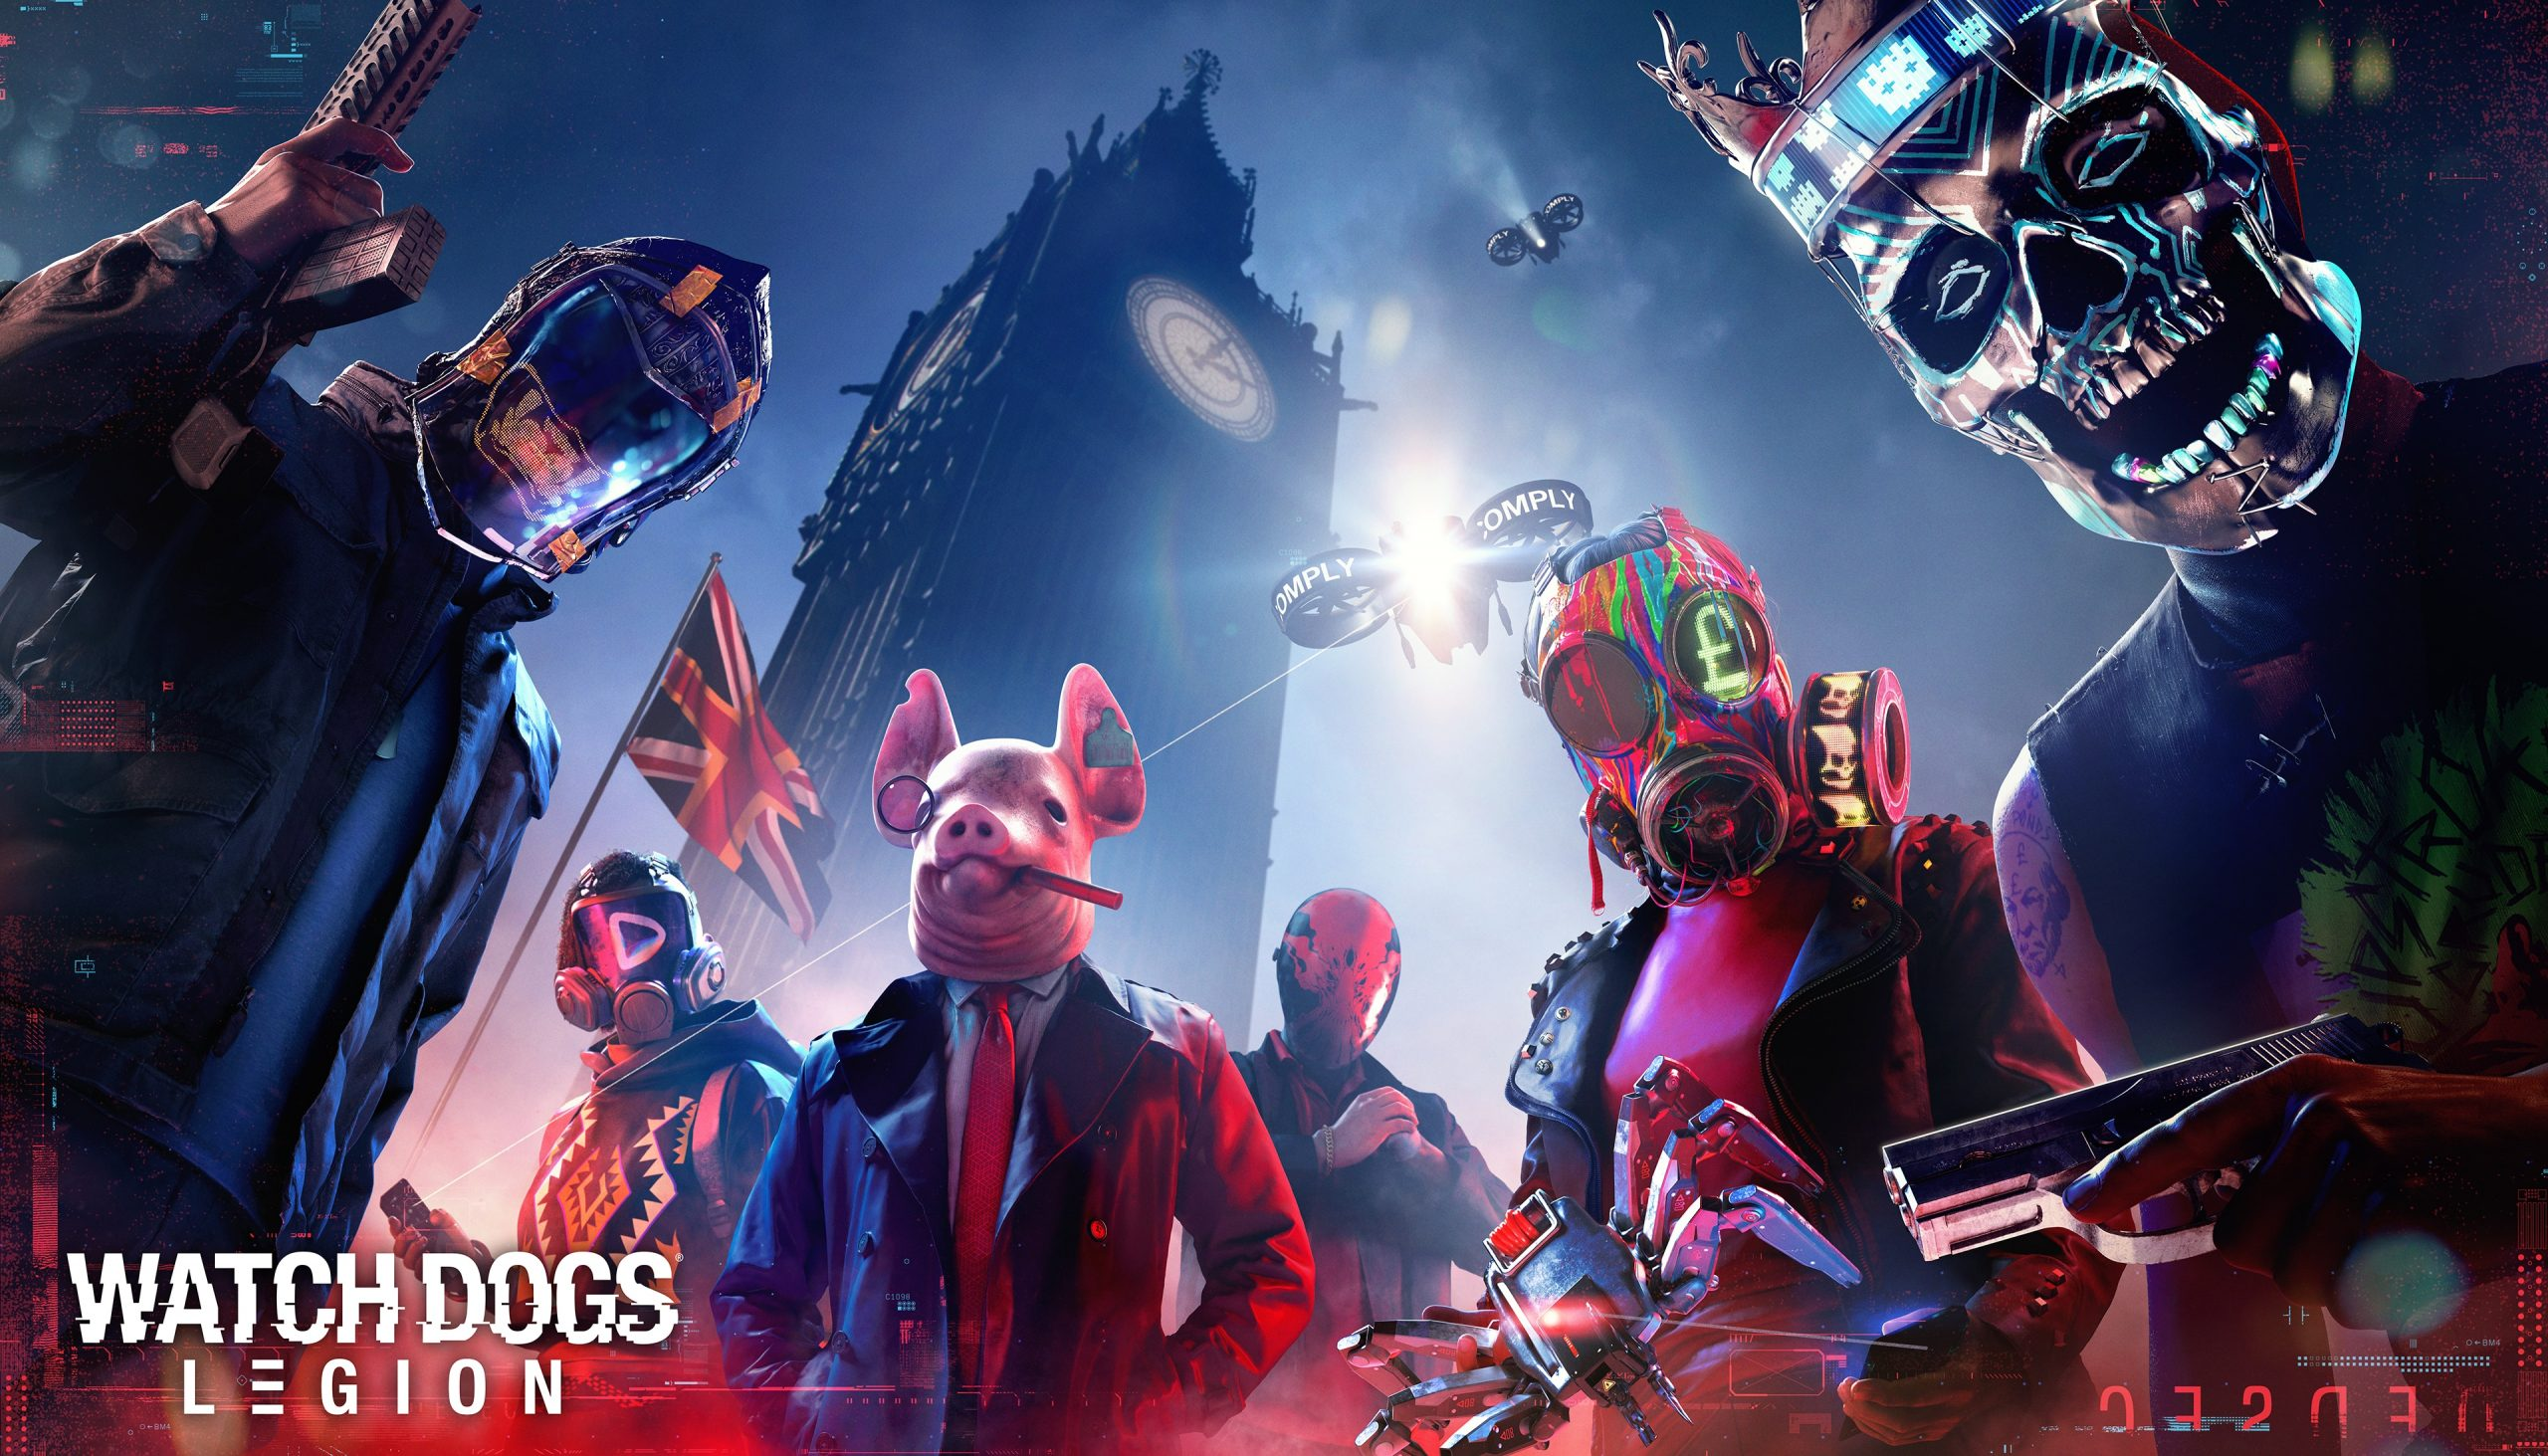 Watch Dogs Legion Release Date, Game Updates Revealed